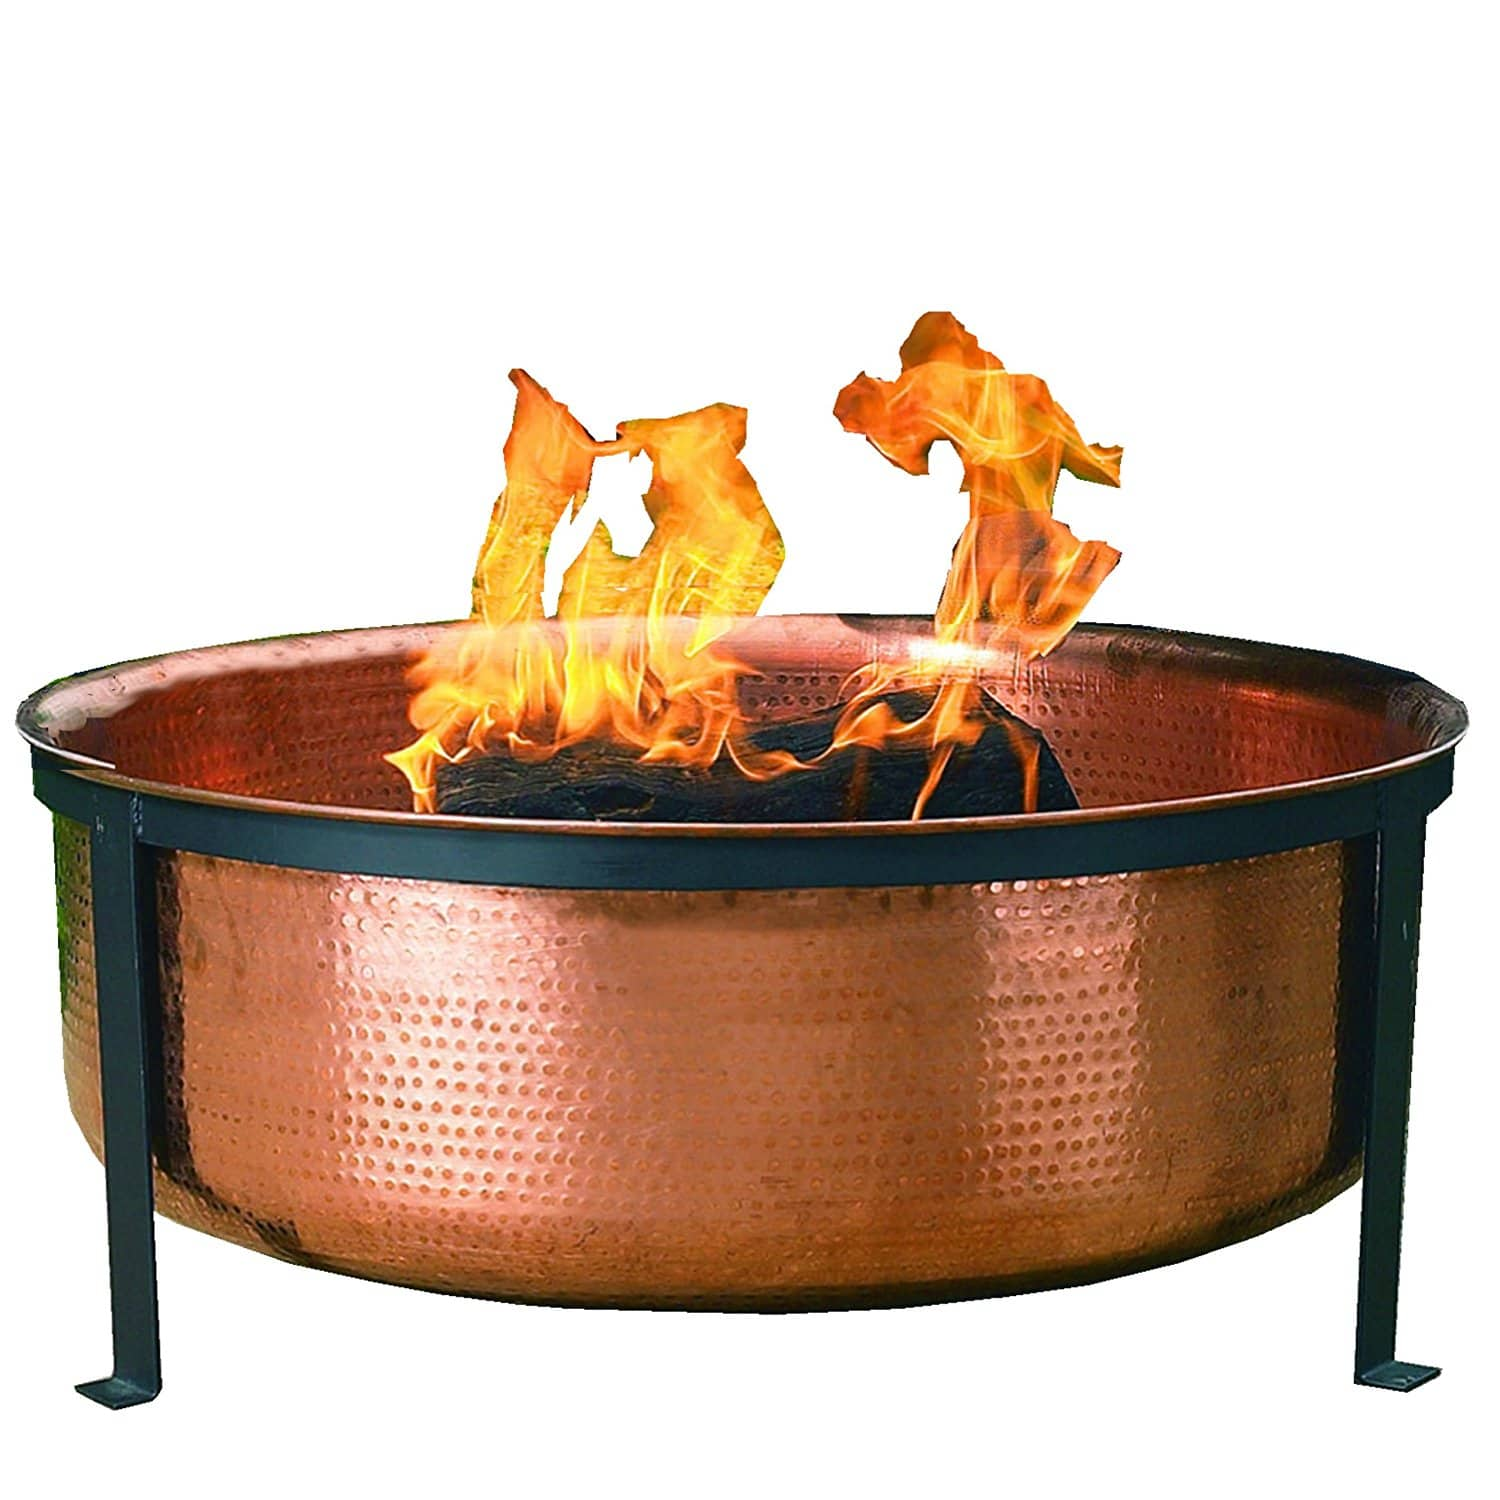 CobraCo SH101 Fire Pit Review